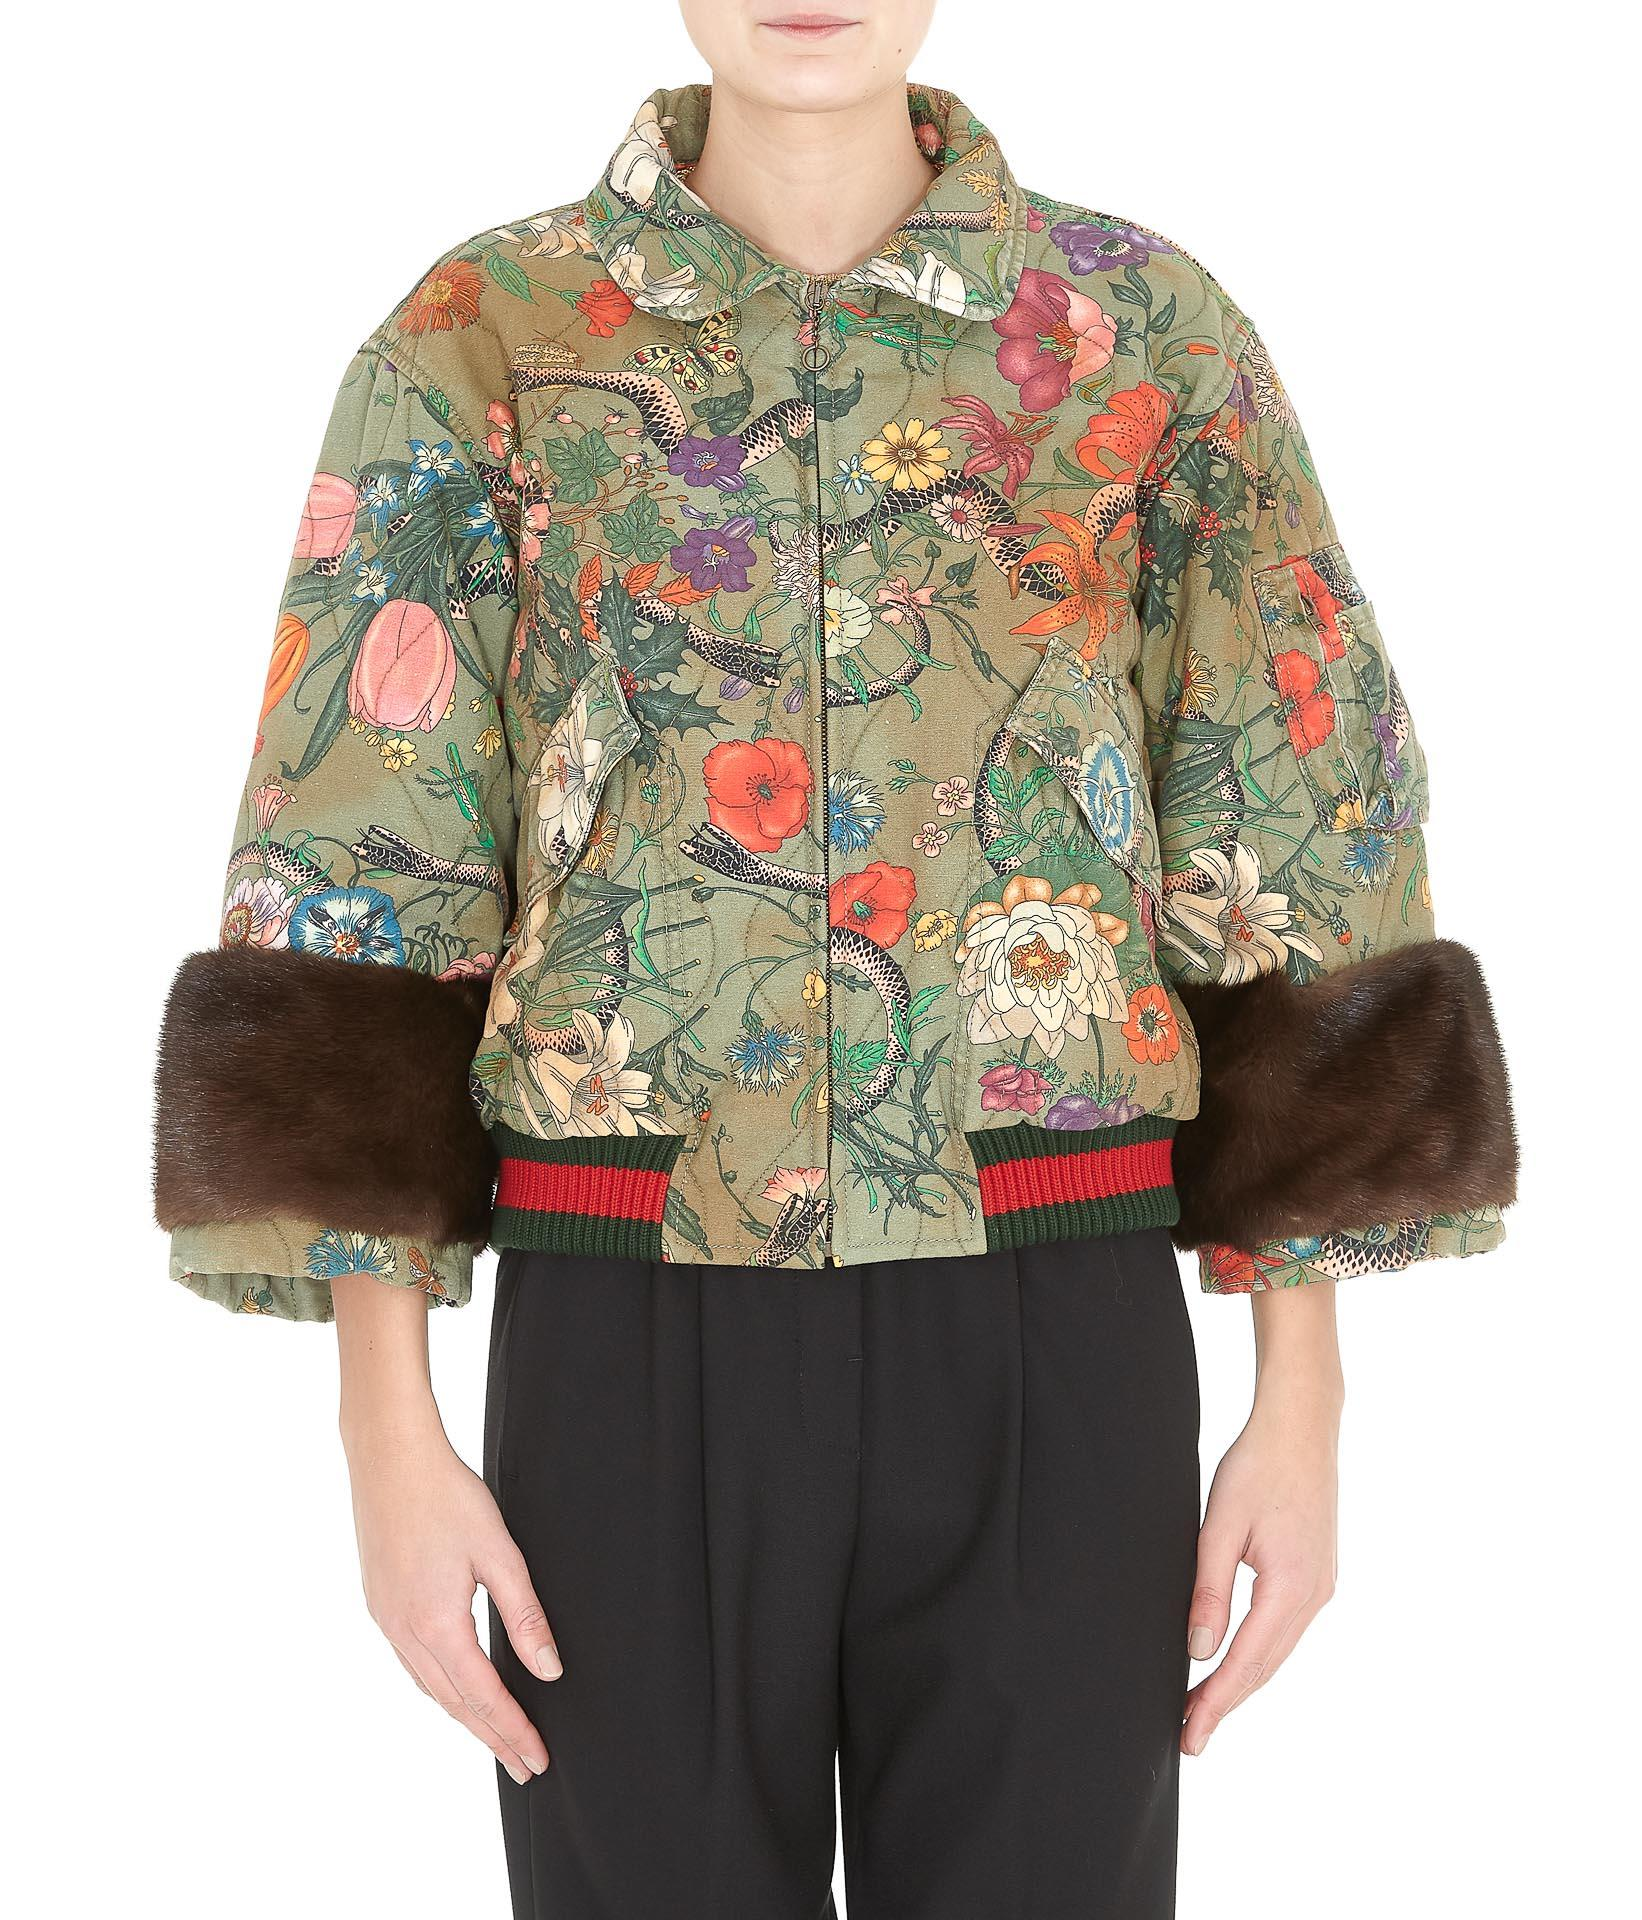 041c5f8cd97 Gucci Flora Snake Print Fur Detail Bomber Jacket In Military Brown  Multicolor